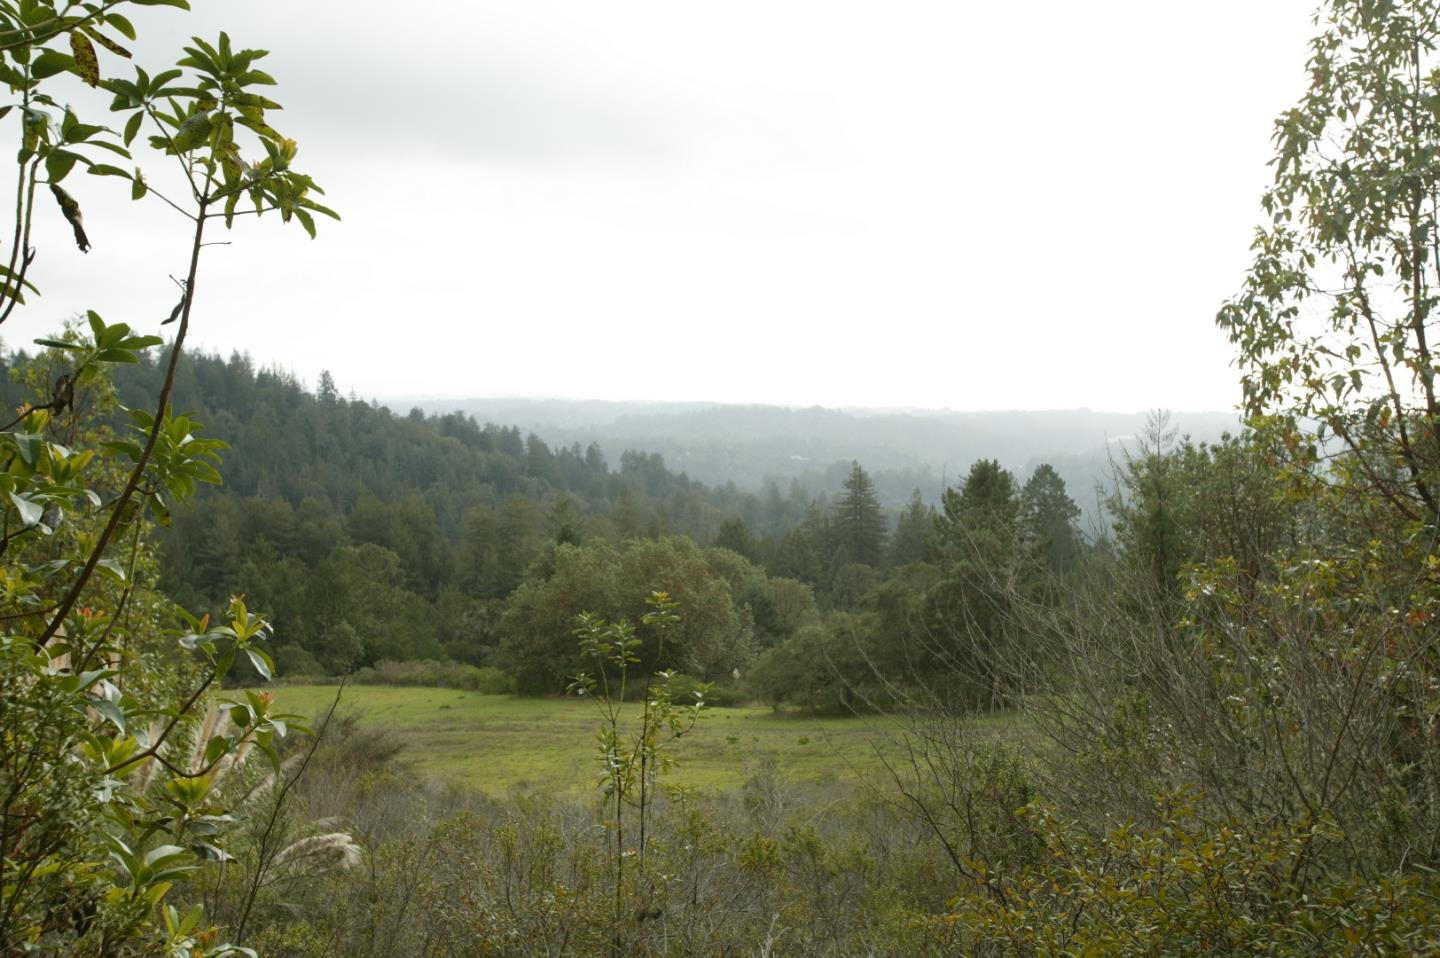 Land for Sale at RIDER Road Aptos, California 95003 United States